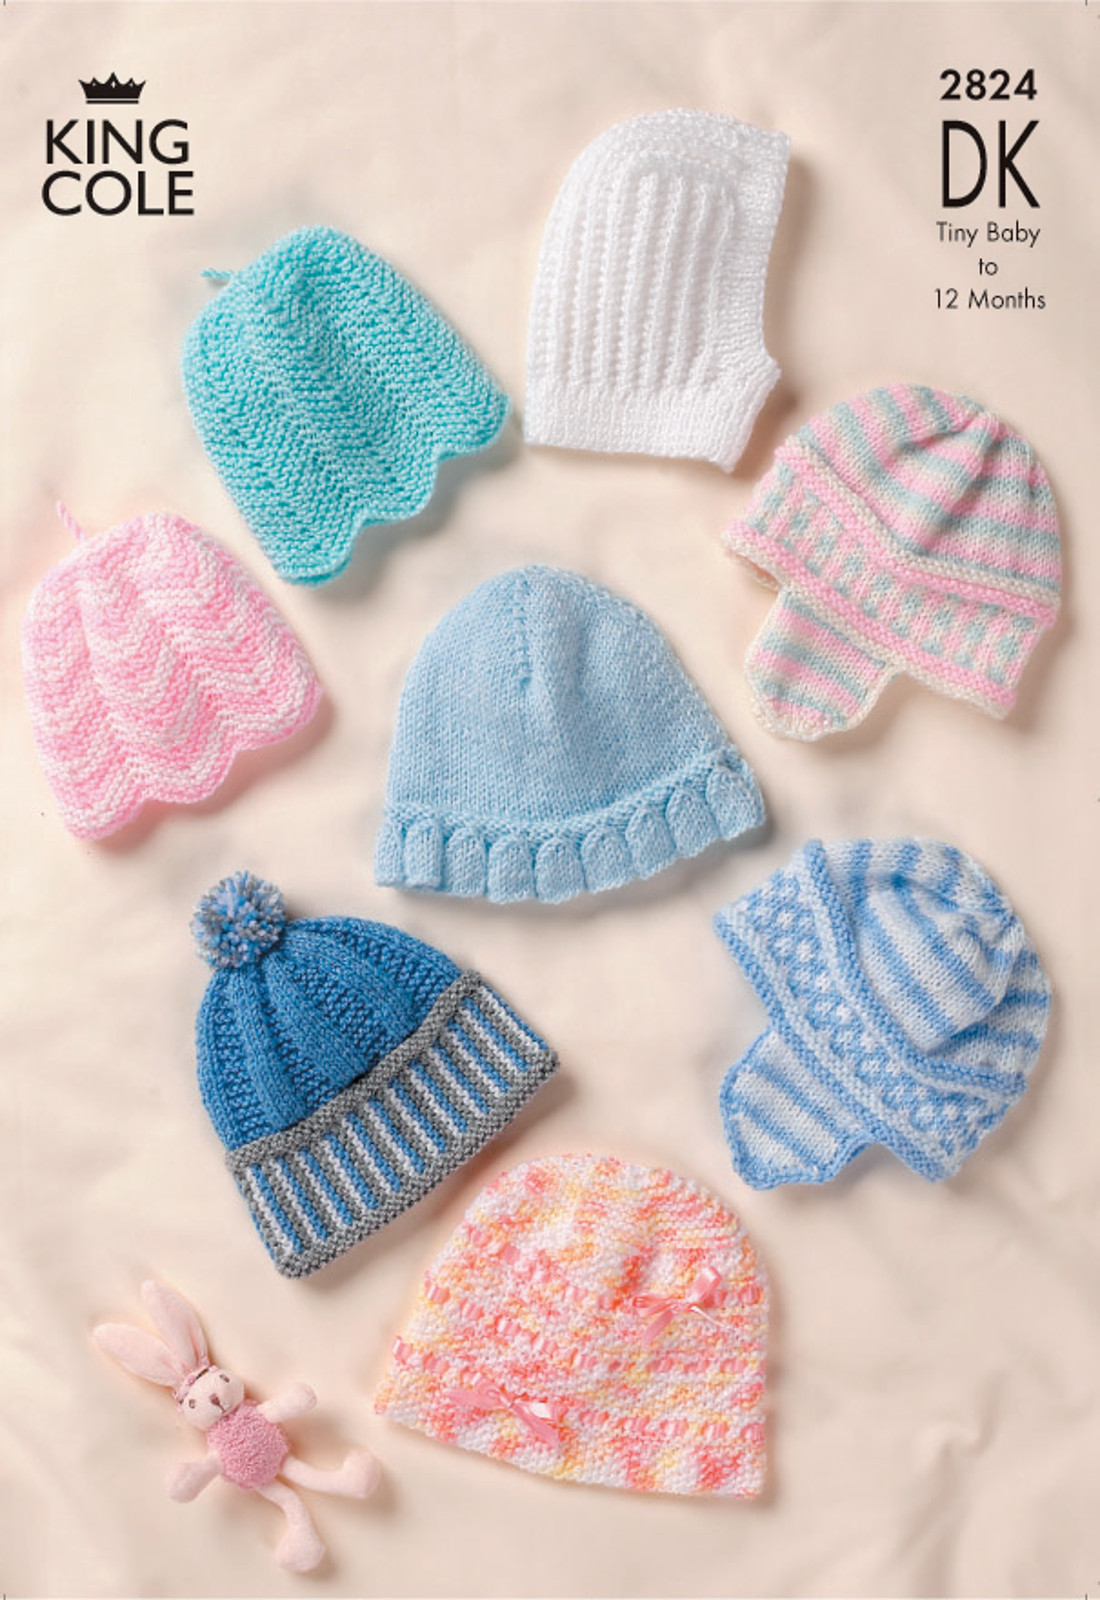 King Cole Double Knitting DK Pattern Baby Hats Bonnet Bobble Hat ...